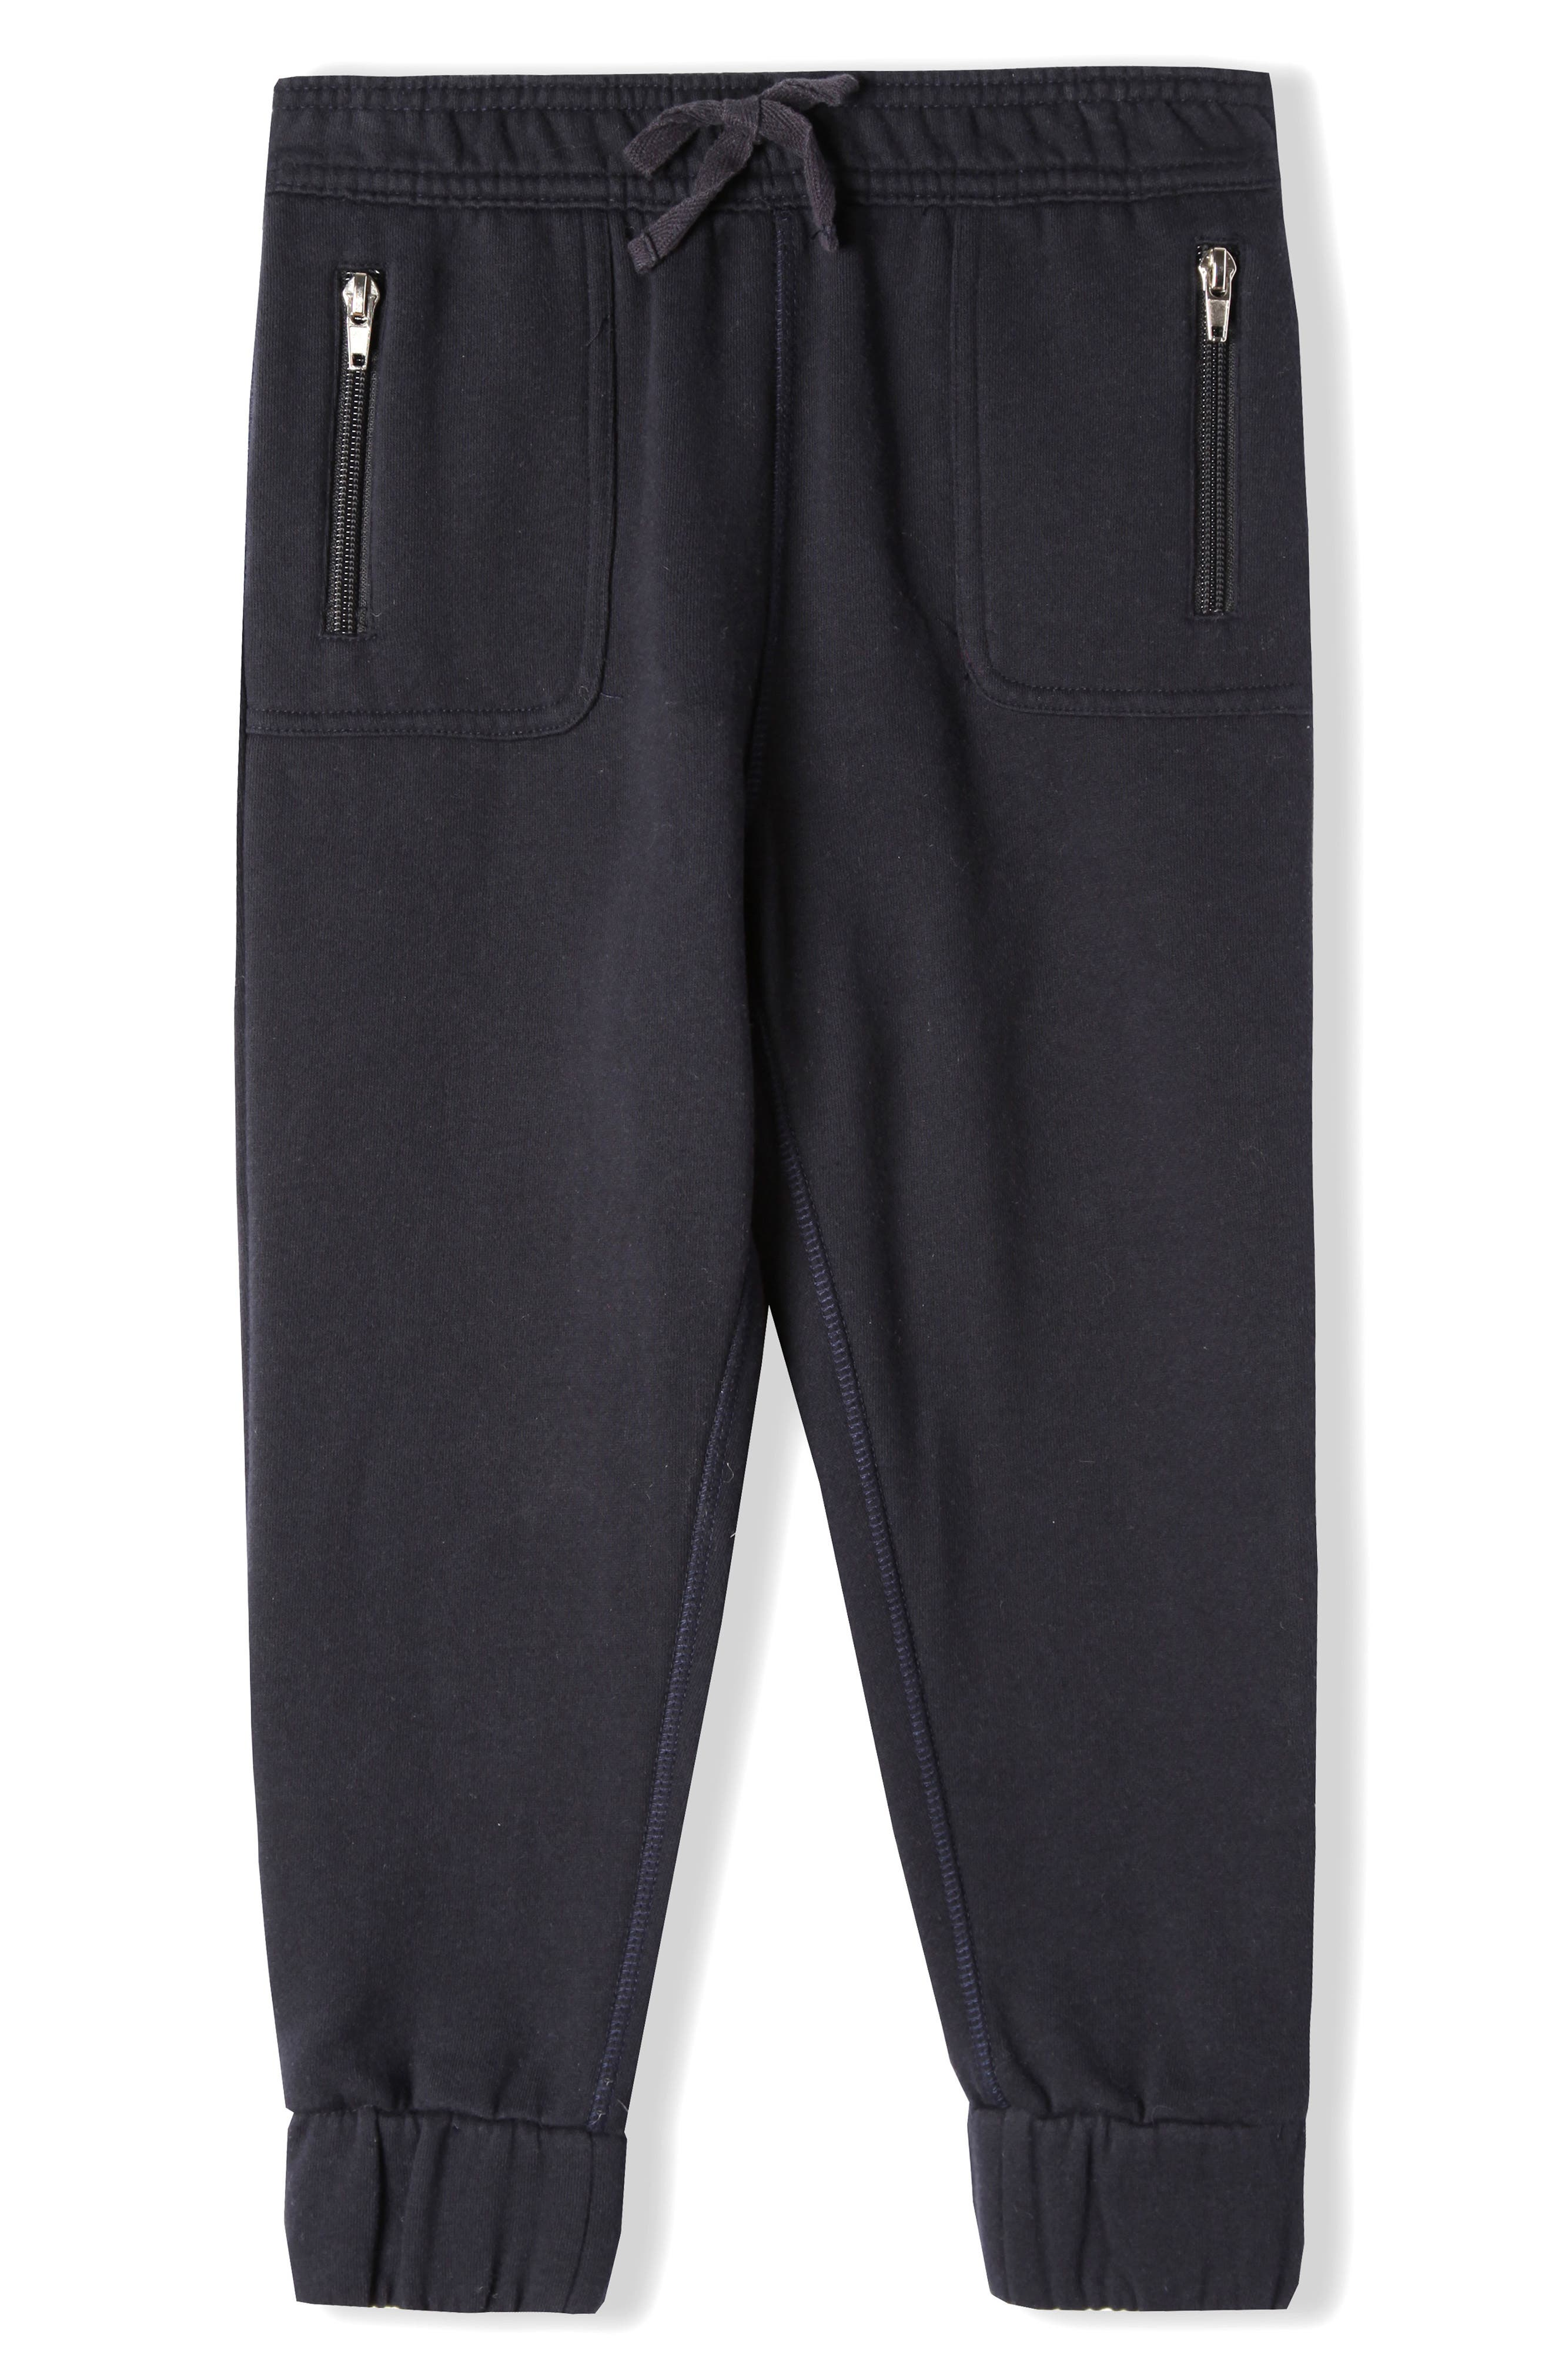 Alternate Image 1 Selected - Art & Eden Mercer Jogger Pants (Toddler Boys, Little Boys & Big Boys)